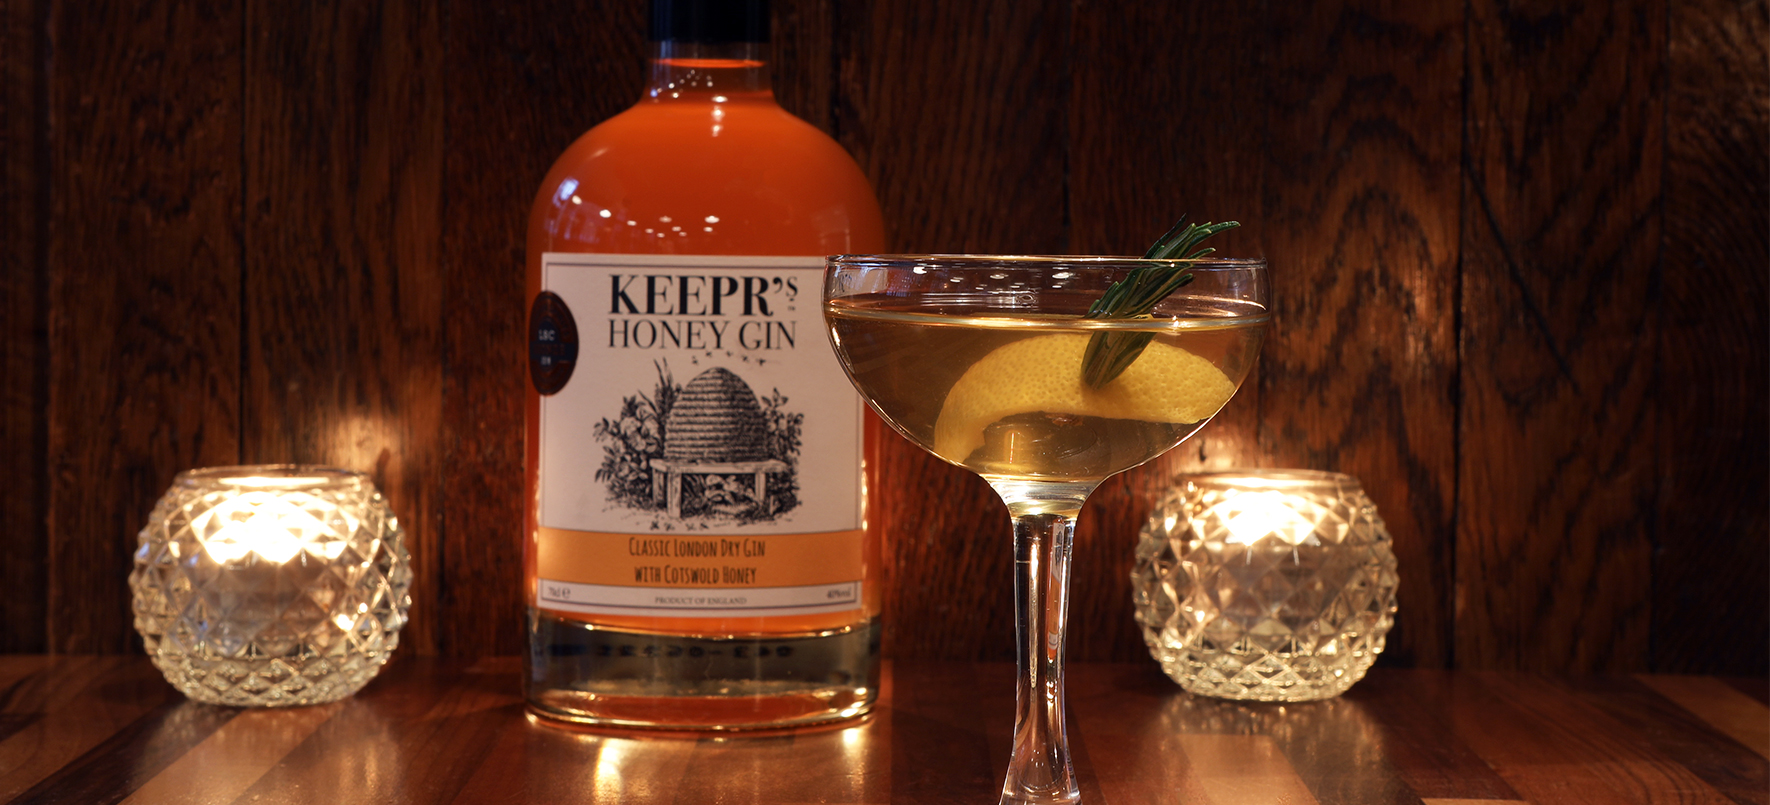 Gin Review: Keepr's Honey Gin 40% abv